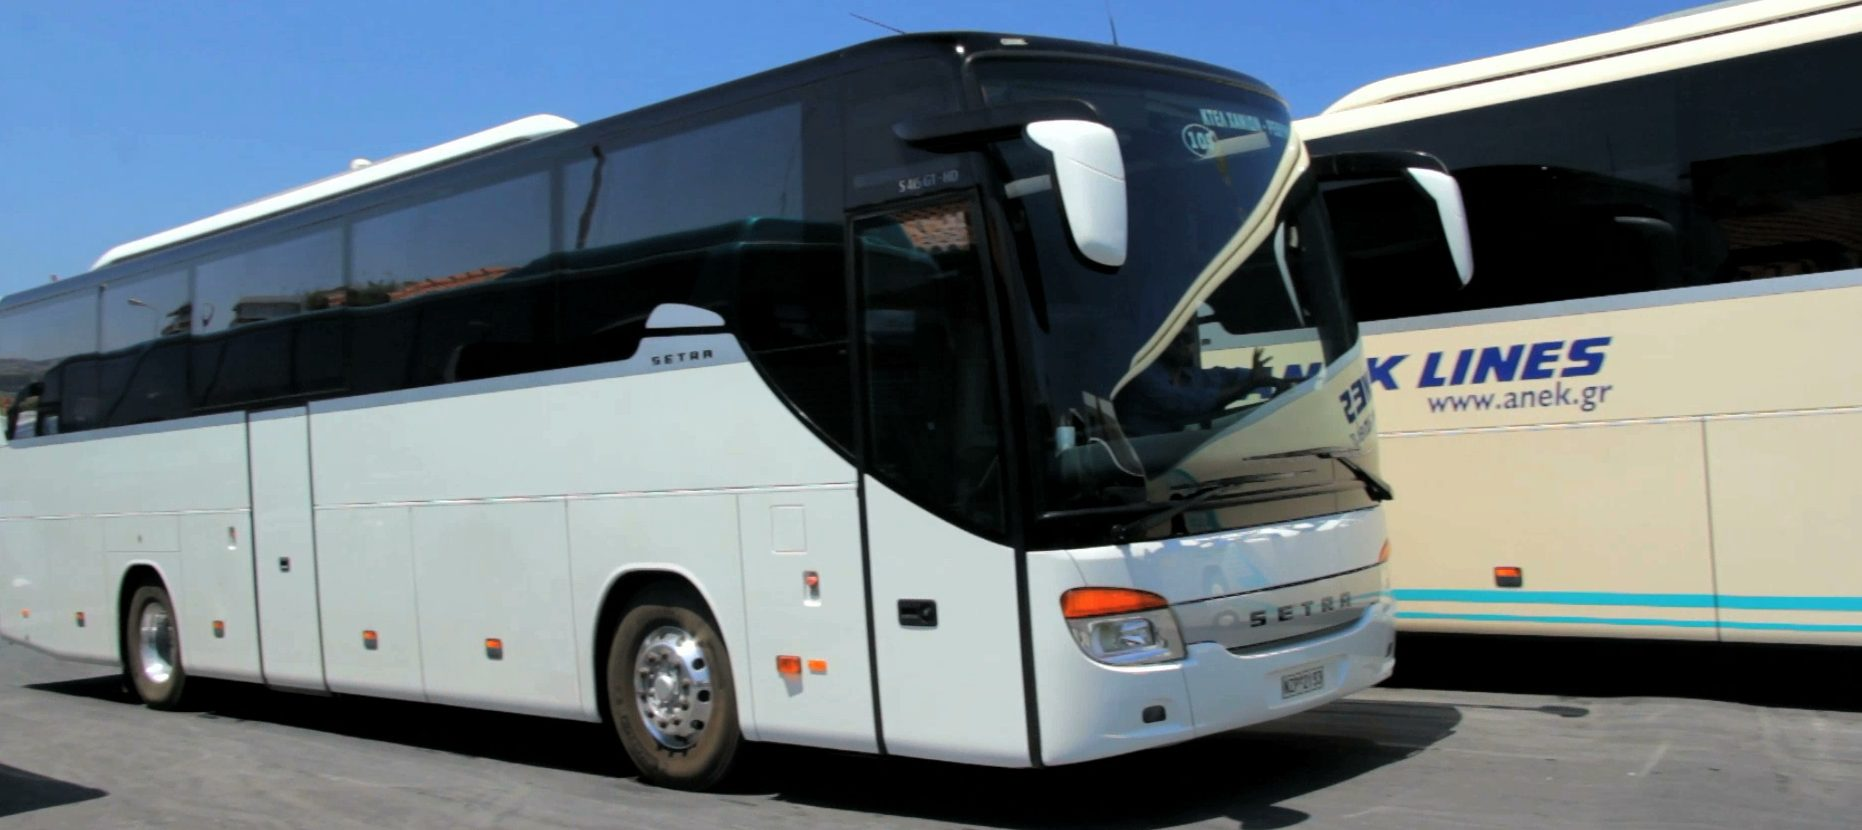 Rethymno Buses to Other Cities